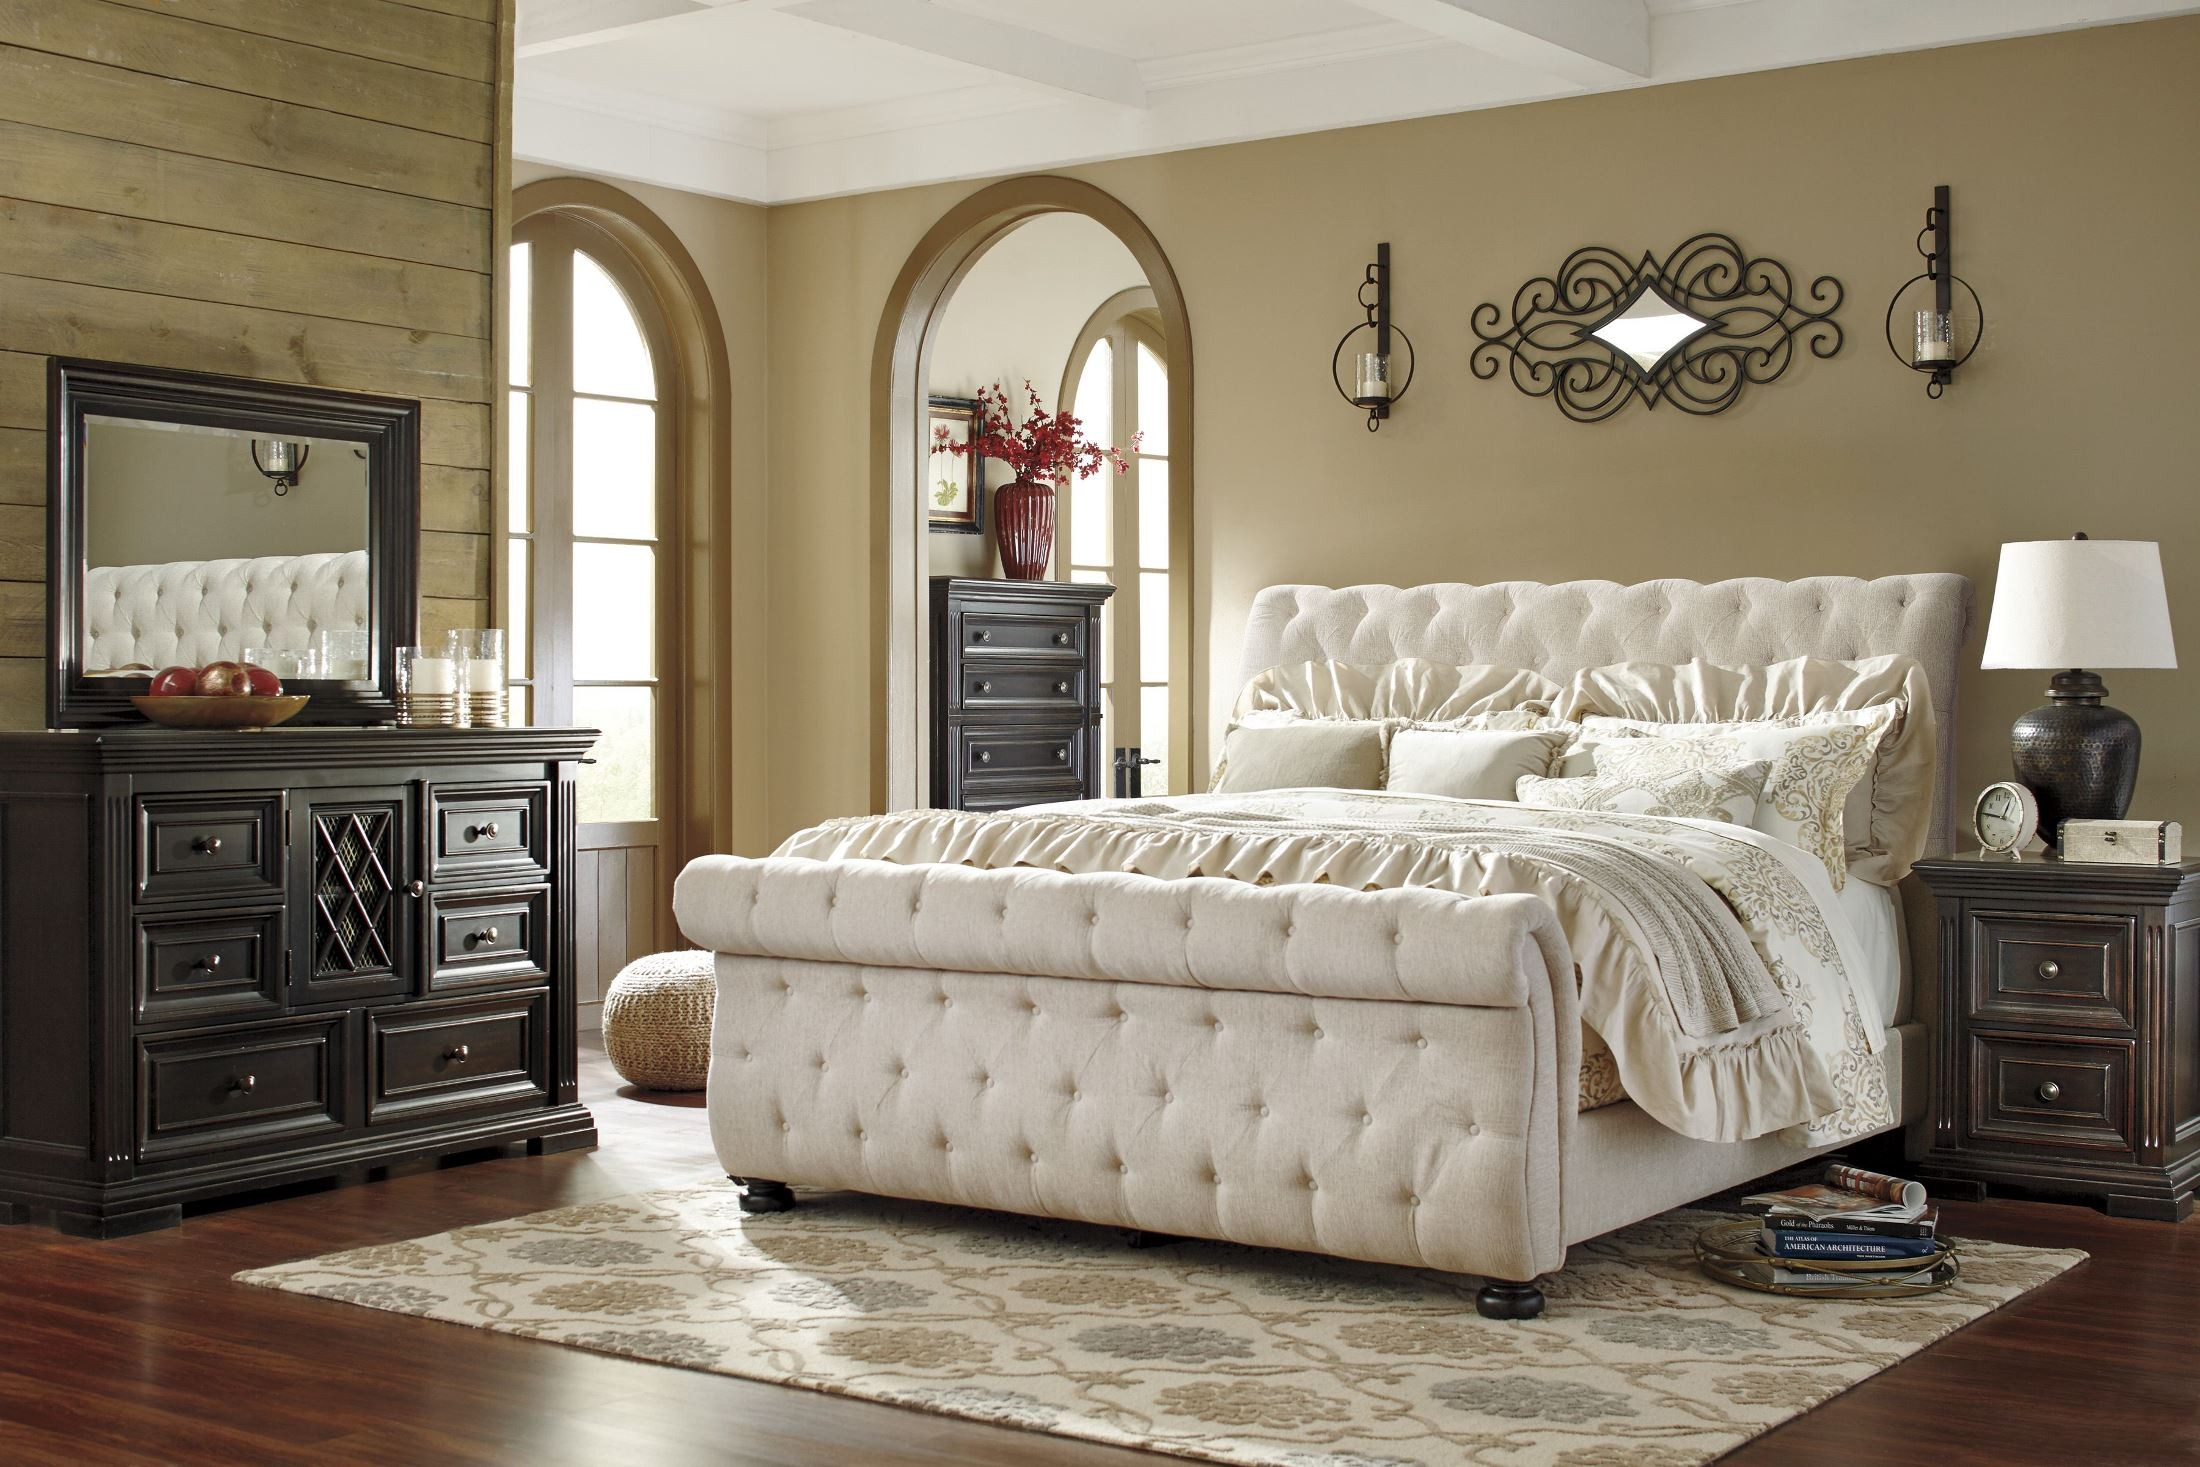 Willenburg Linen King Upholstered Sleigh Bed From Ashley Coleman